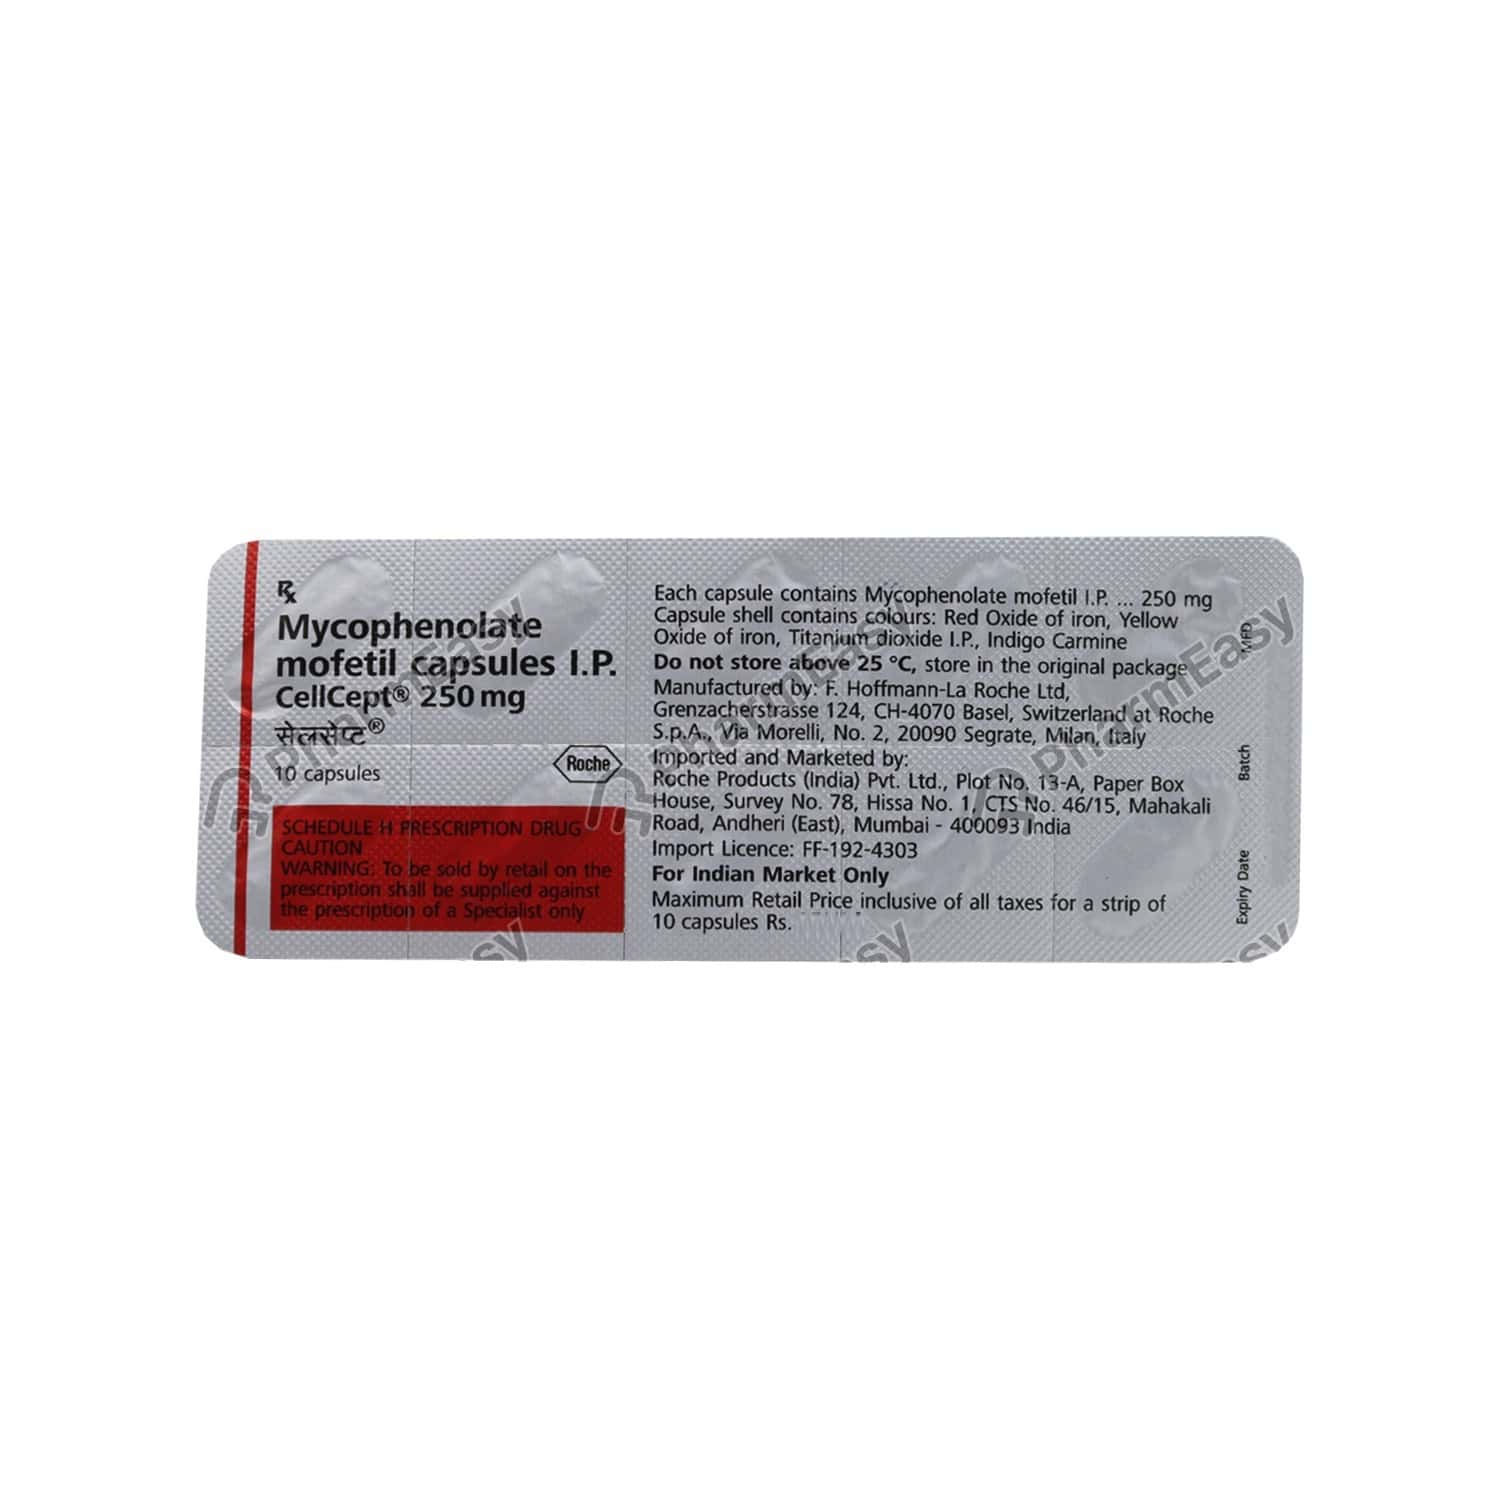 Cellcept 250mg Strip Of 10 Capsules